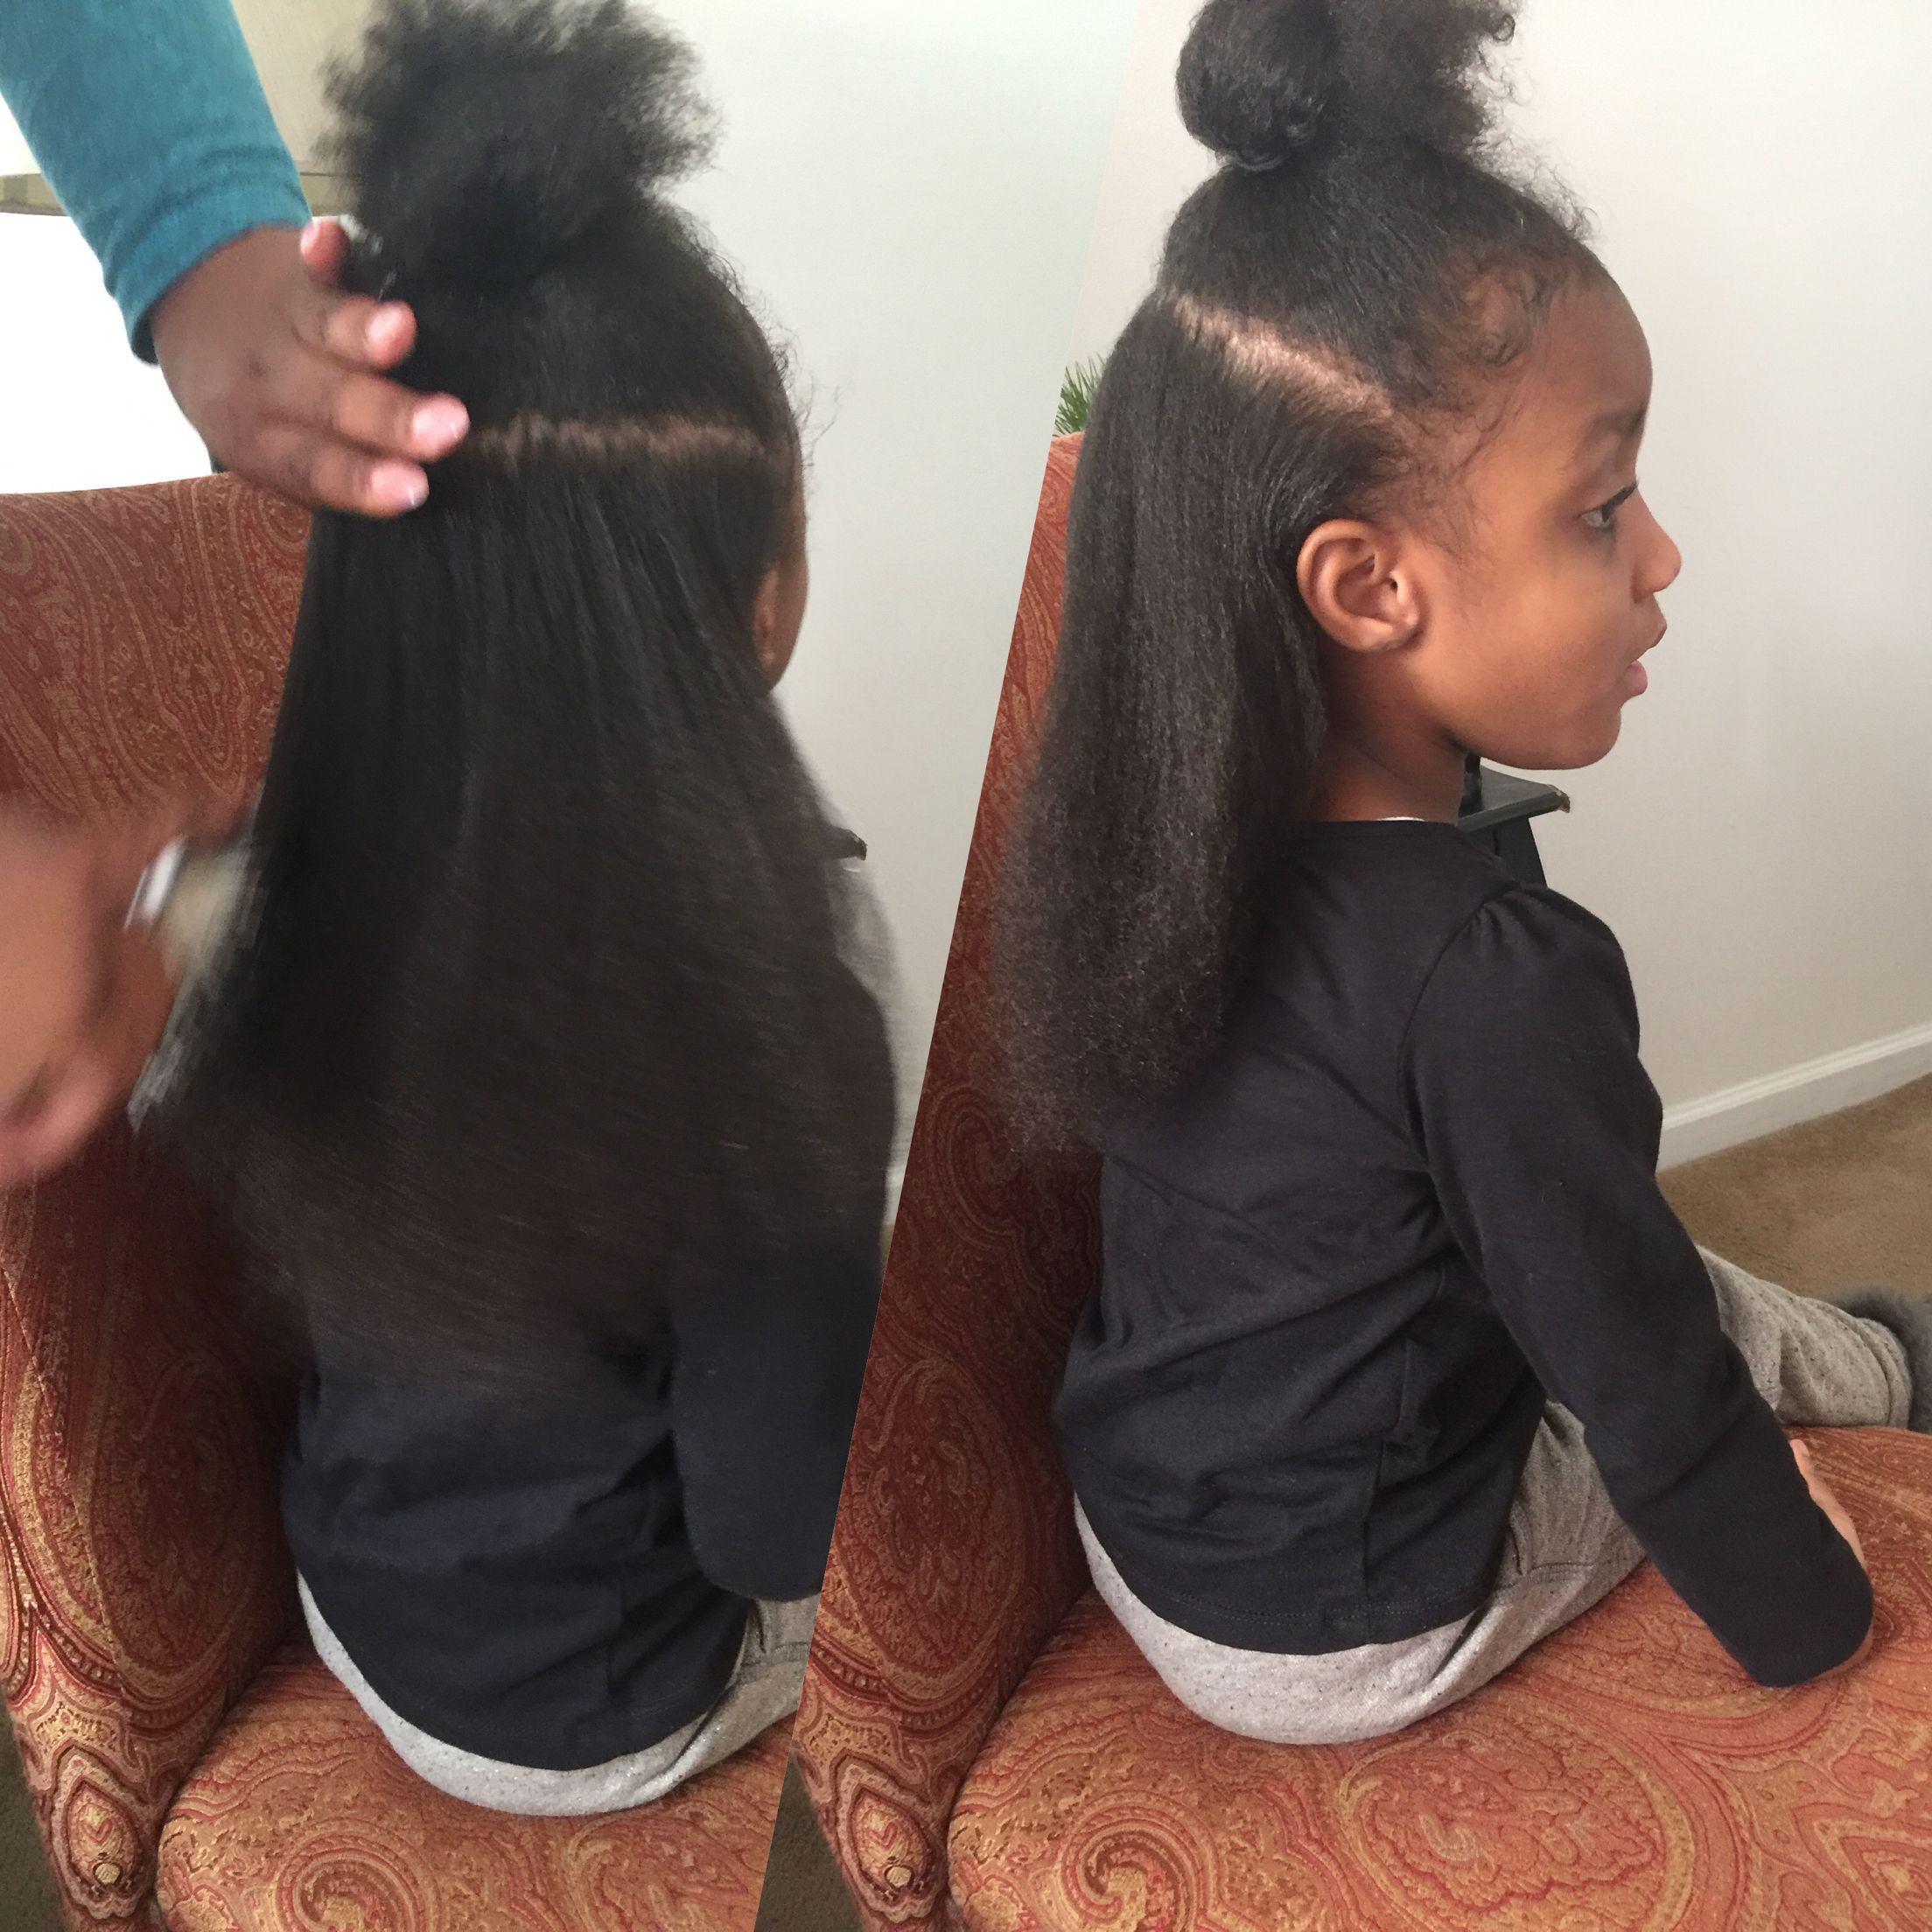 My 4 Year Old Hair Blow Dried With Low Heat Blowout Longhair Toddlerhair Toddler Kids Girl Twin Flat Iron Hair Styles Kids Hairstyles Blowout Hair